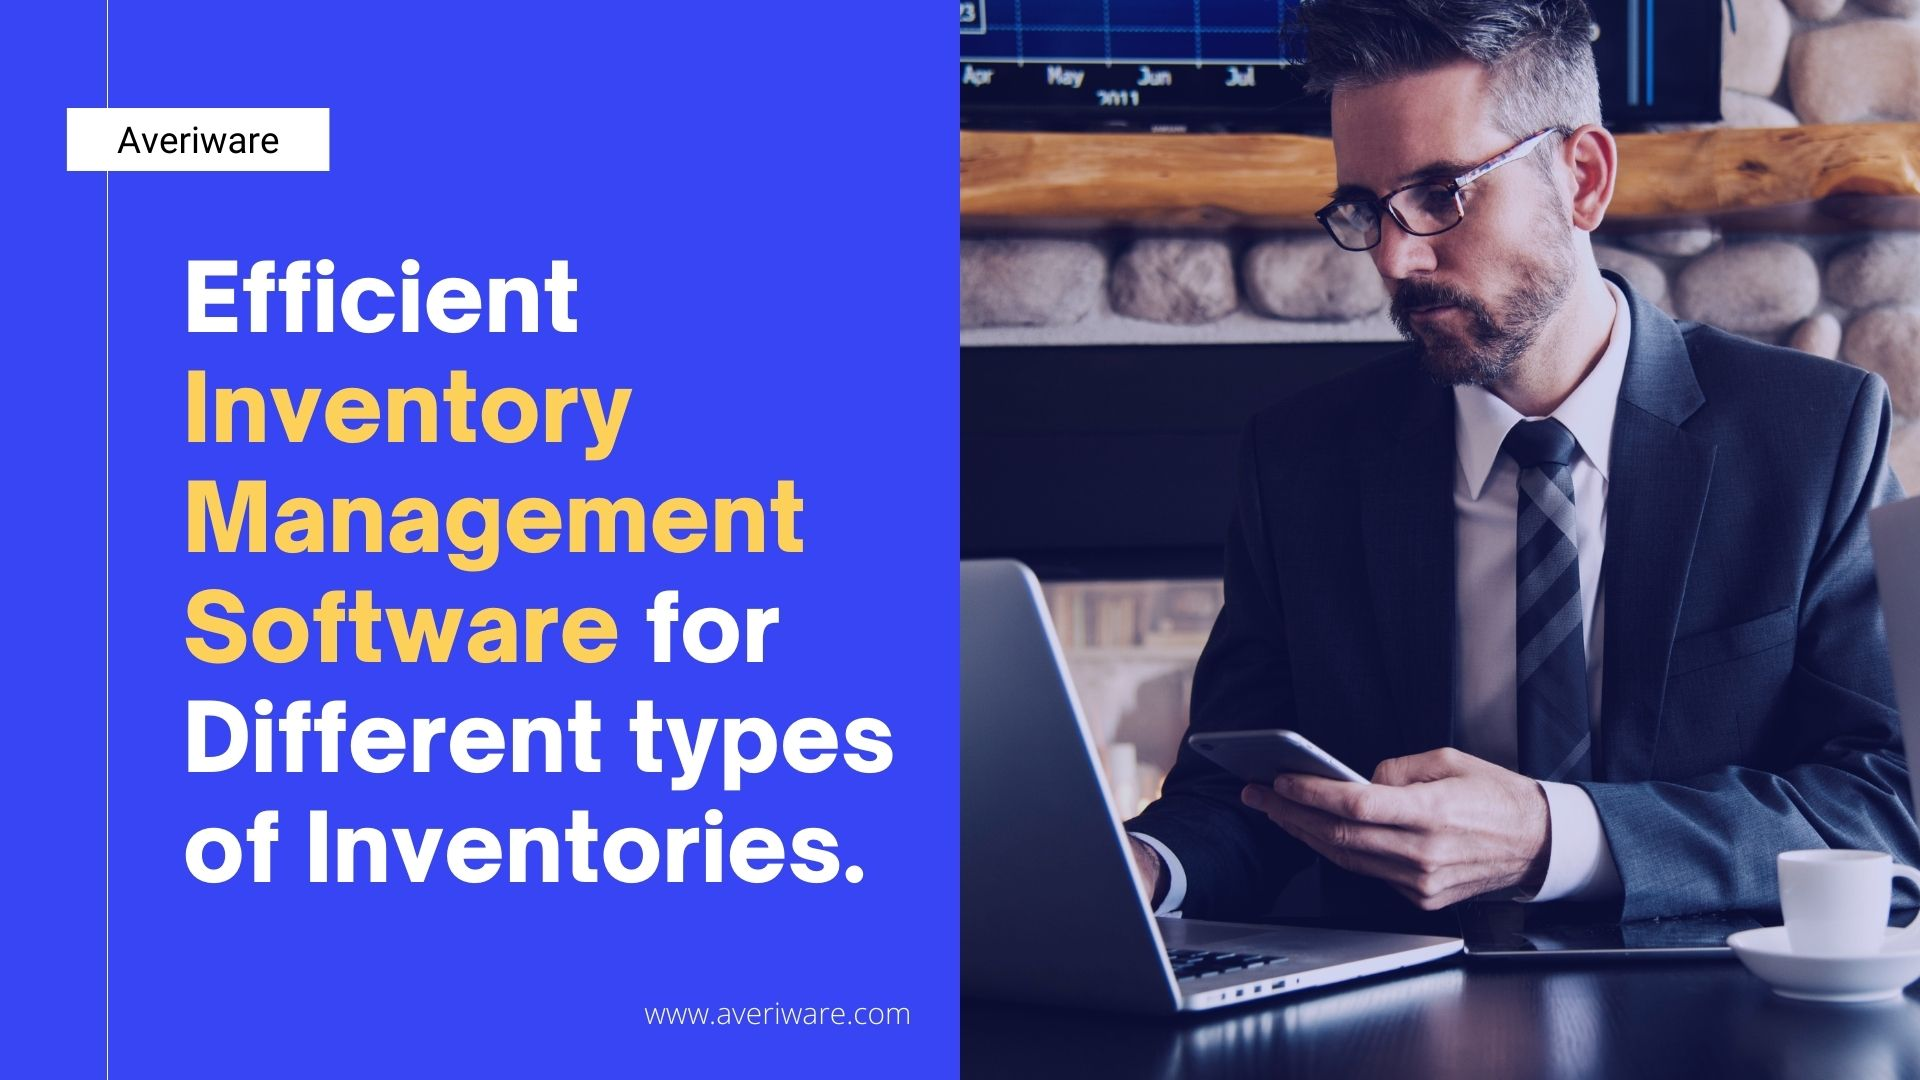 Efficient Inventory Management Software for Different types of Inventories